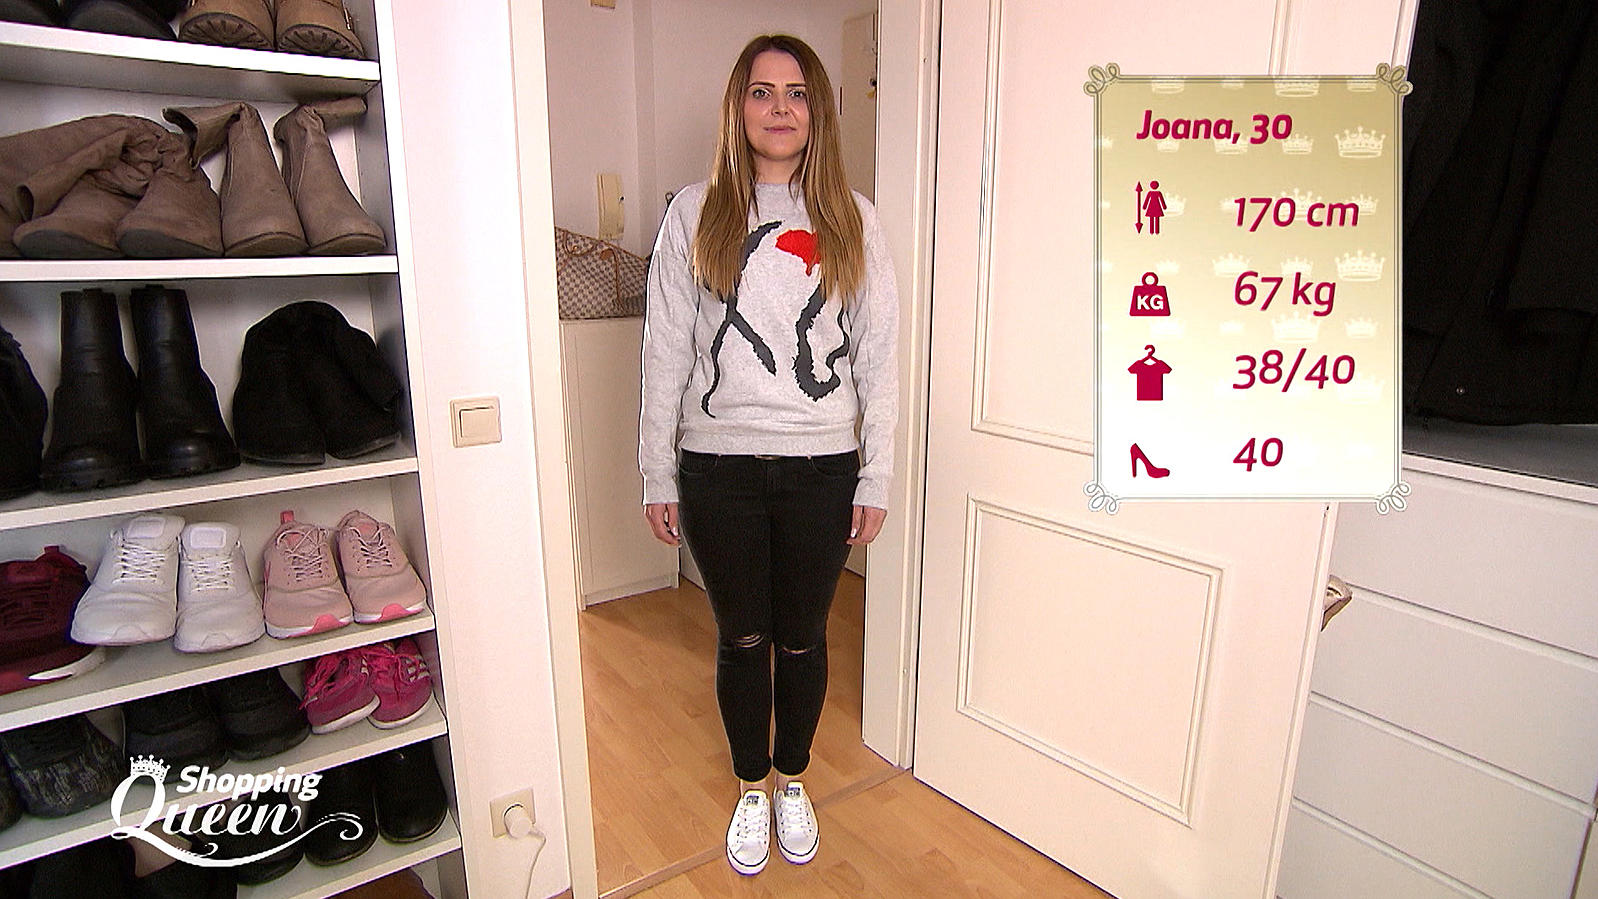 shopping queen joana aus hannover im style check. Black Bedroom Furniture Sets. Home Design Ideas